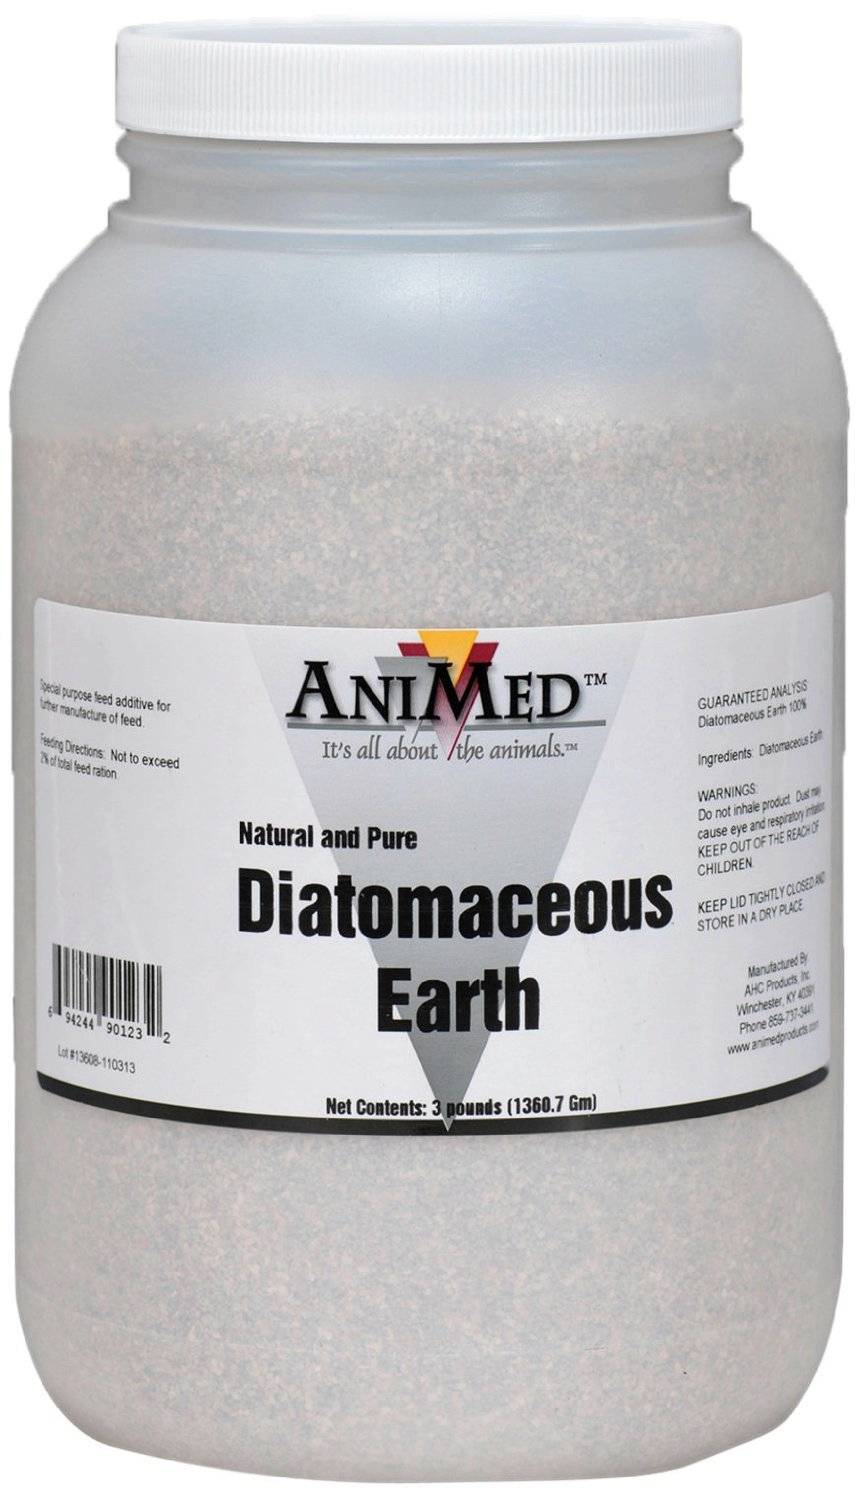 Animed Fsf - Diatomaceous Earth